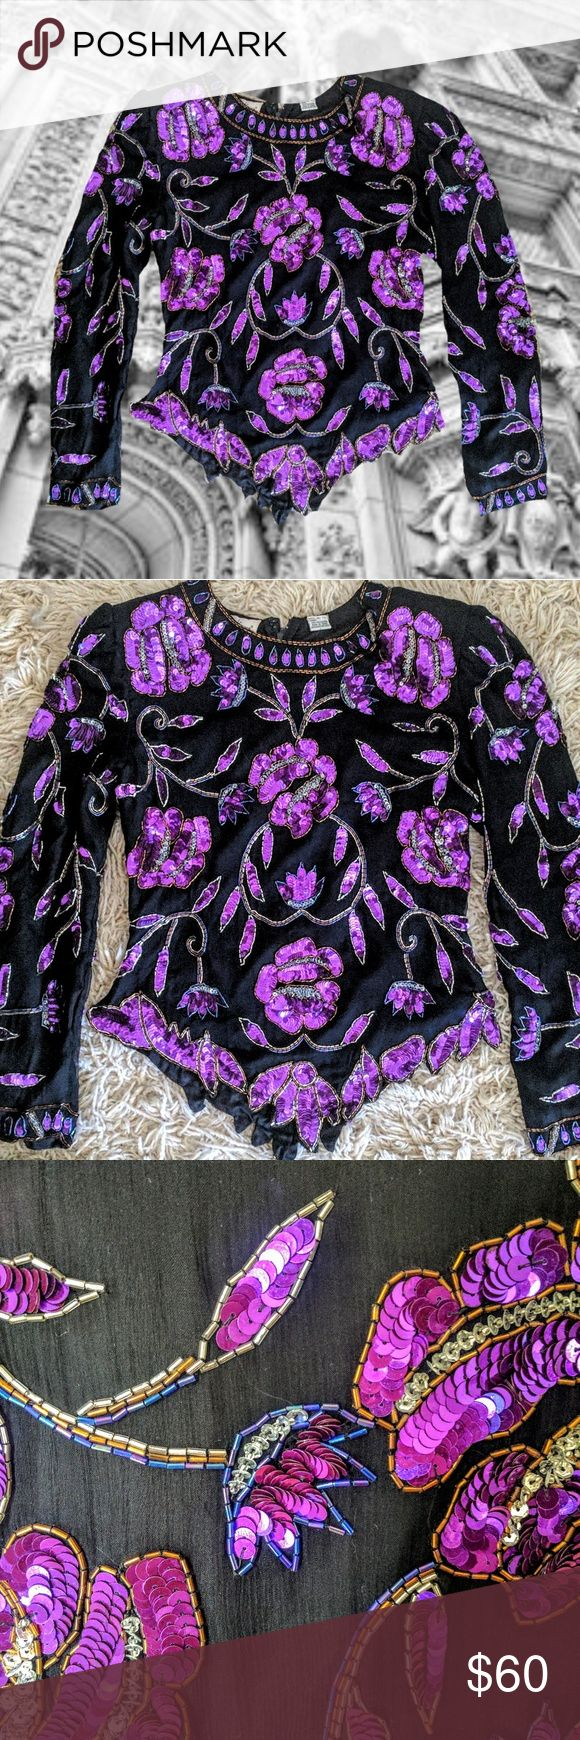 Vintage Sequin Blouse Dramatic silk & sequin floral long sleeve top, from the 1980s. V hem detail, scoop neck, zip back. Sz M. In great vintage condition no missing sequins or wear, truly stunning piece. AskJenHowe Tops